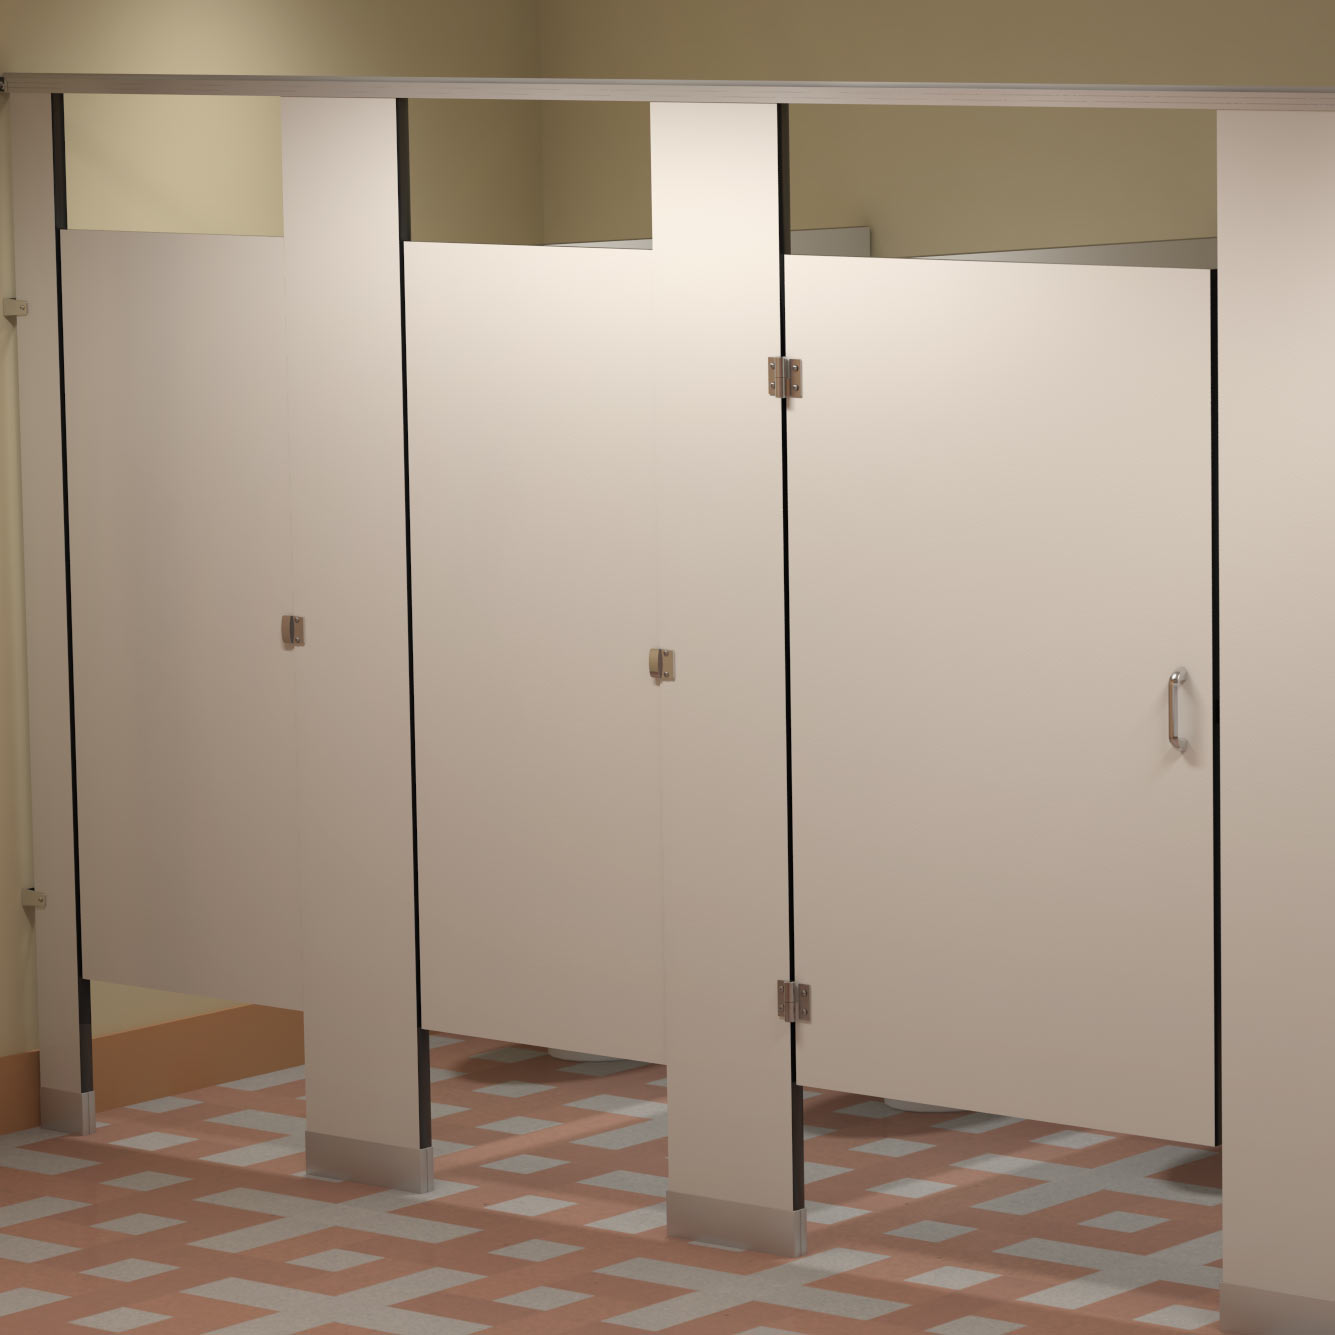 Bathroom Partitions Materials phenolic-bathroom-partitions